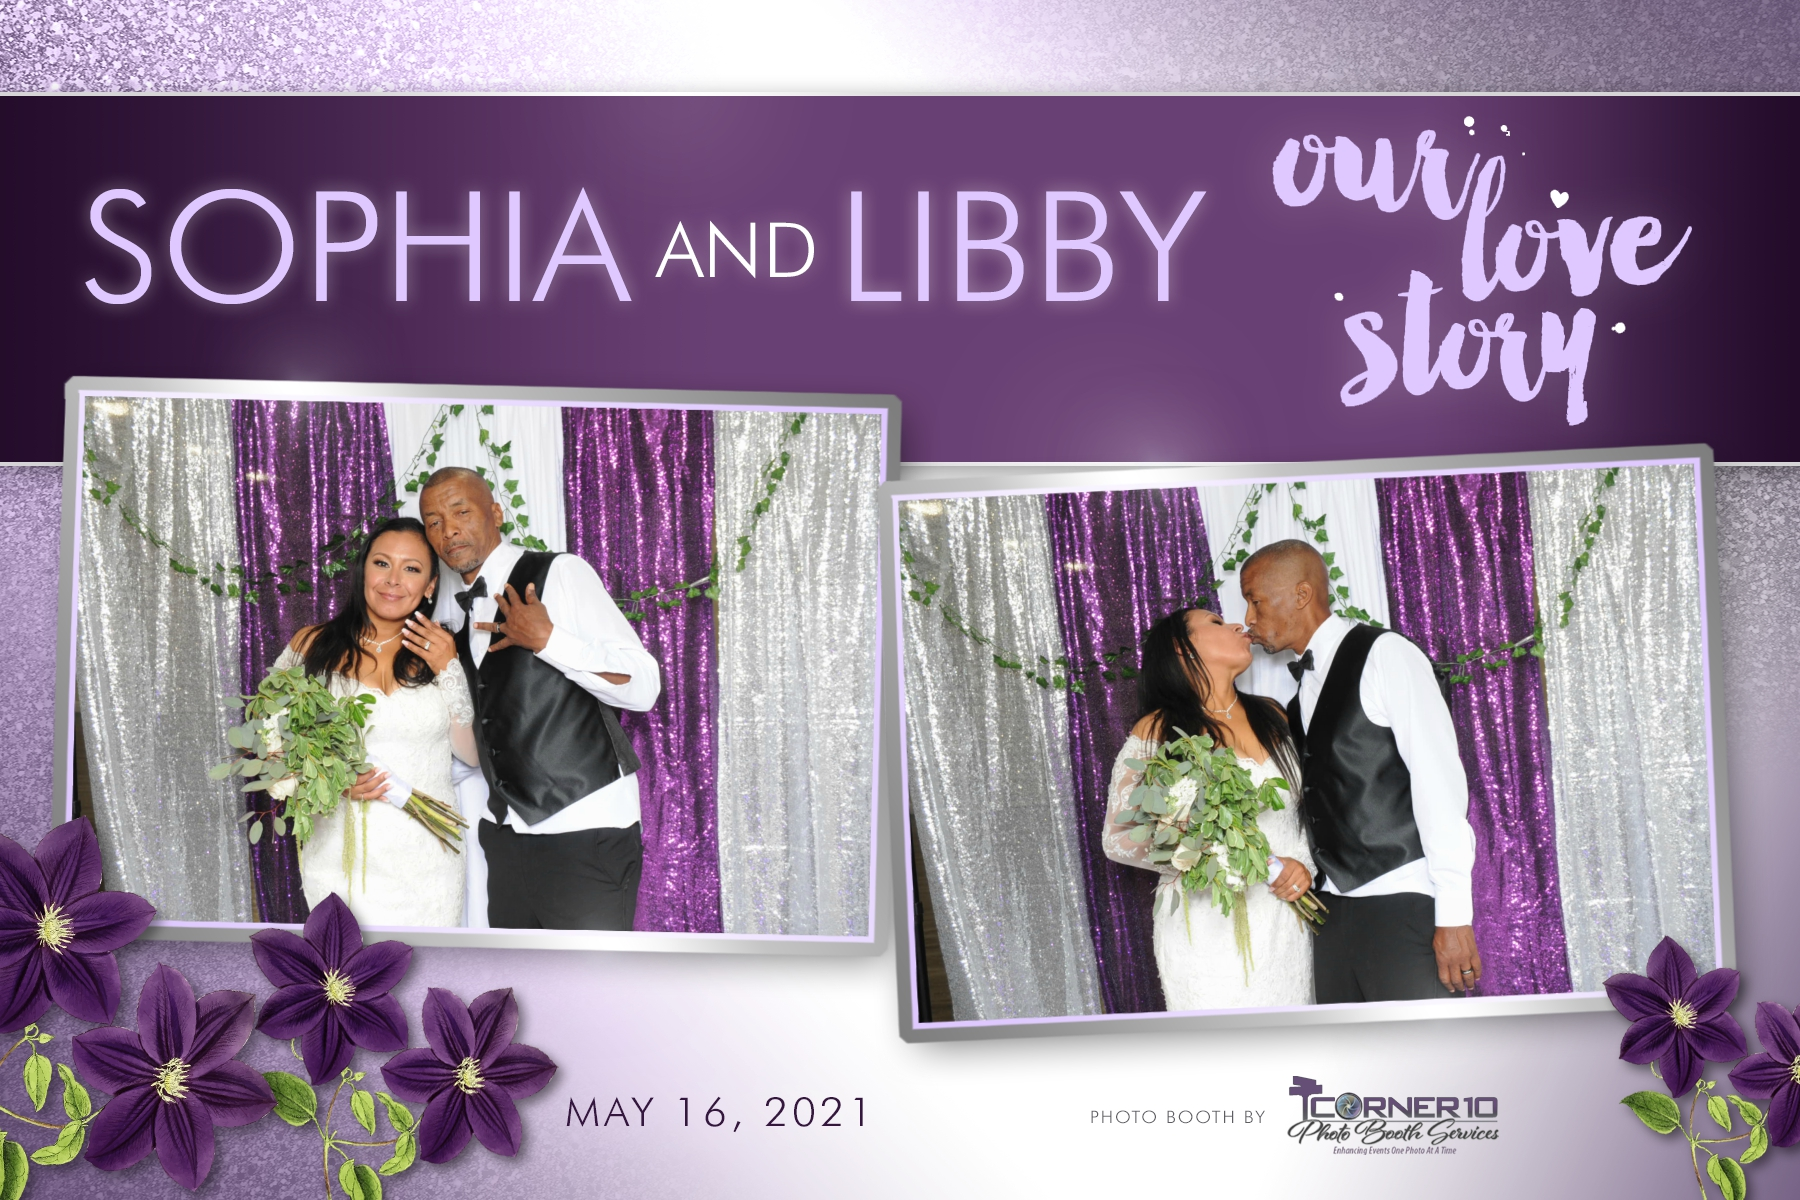 Corner 10 Photo Booth Services - First Time Back featured image